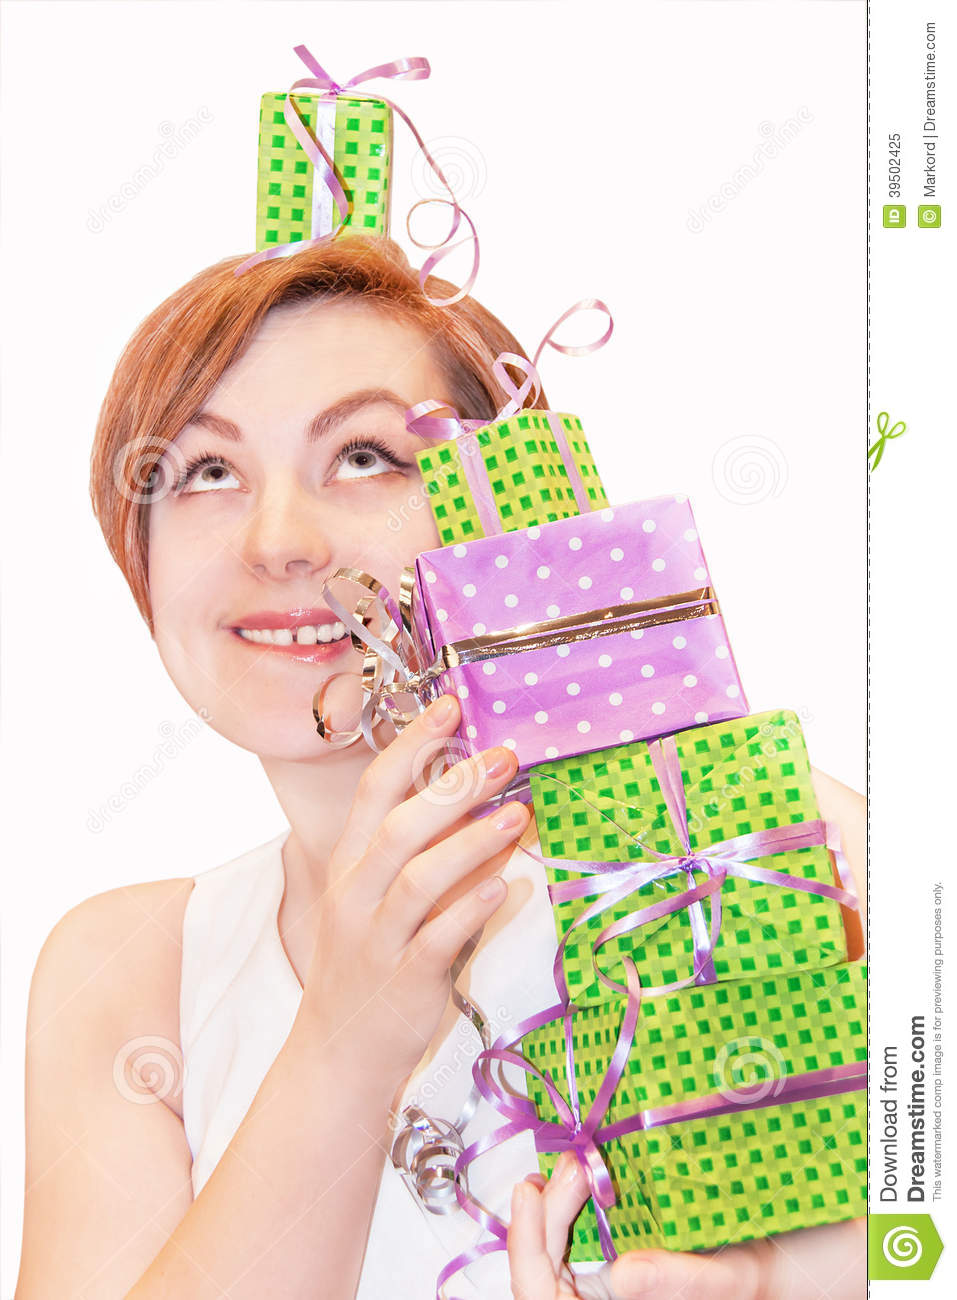 Girl holding gift boxes.